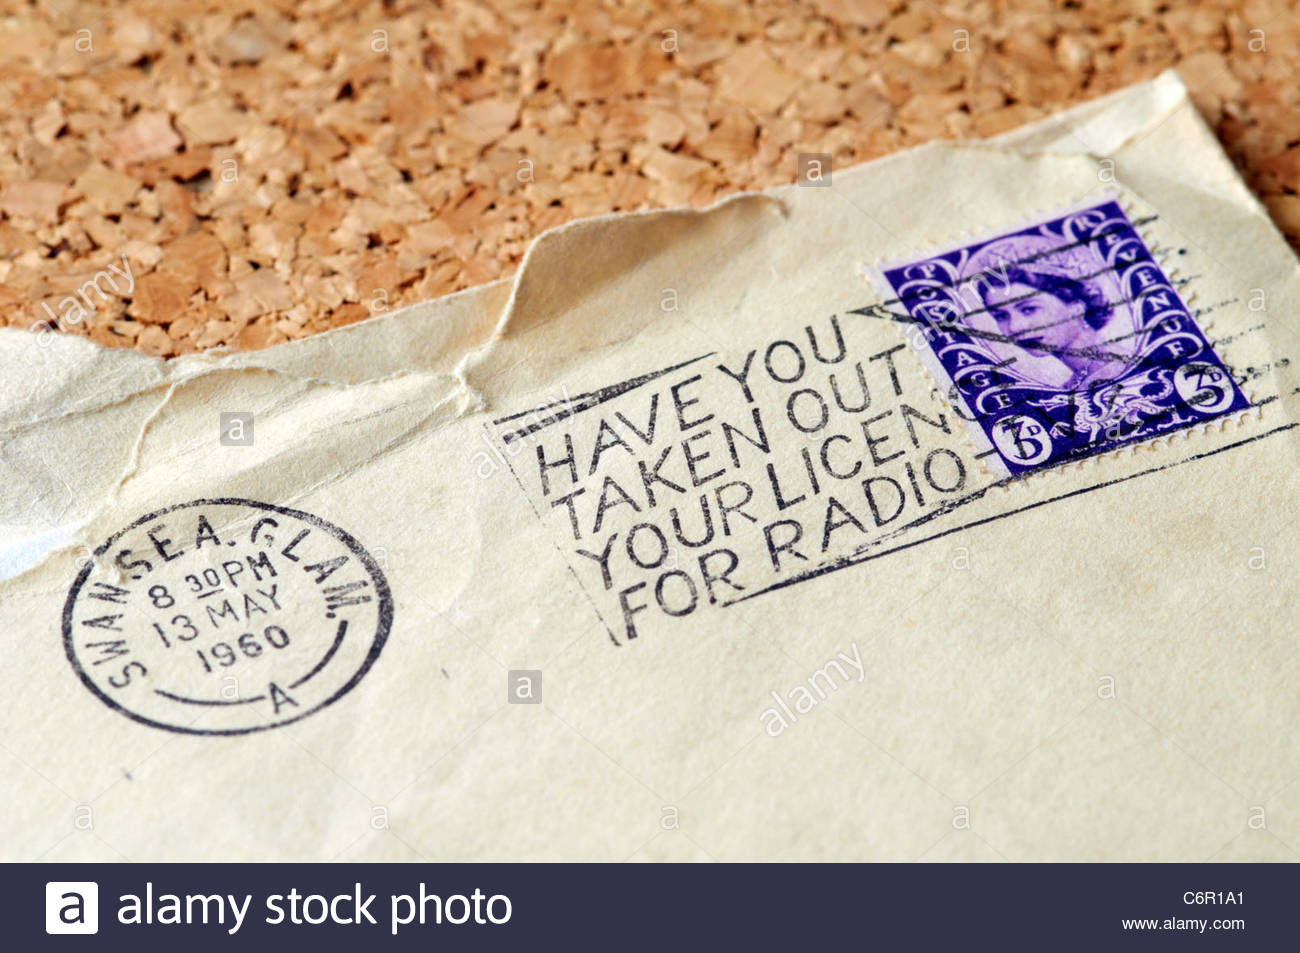 postmark on envelope with old 3d three pence stamps dated 1960 reminding you to buy radio tv licence - Stock Image